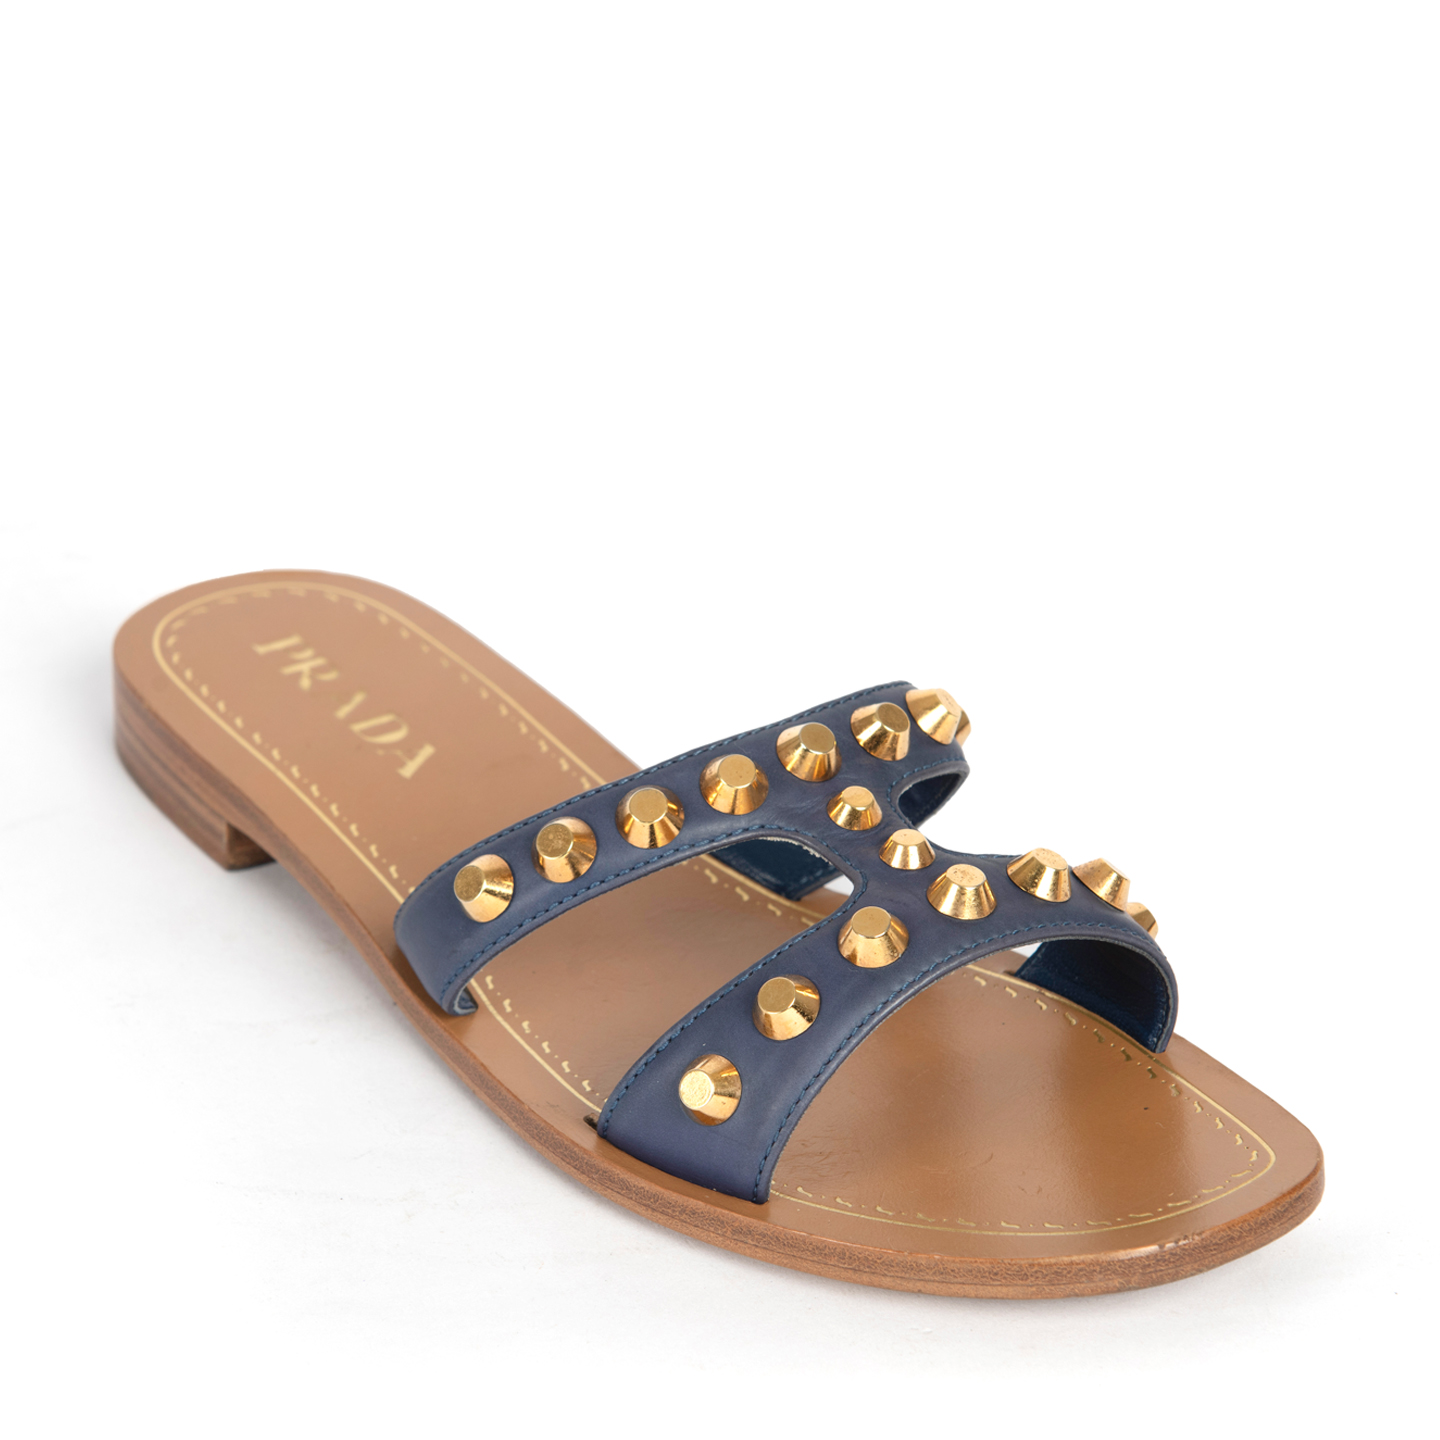 Prada Blue Leather Studded Flat Slide Sandals 01